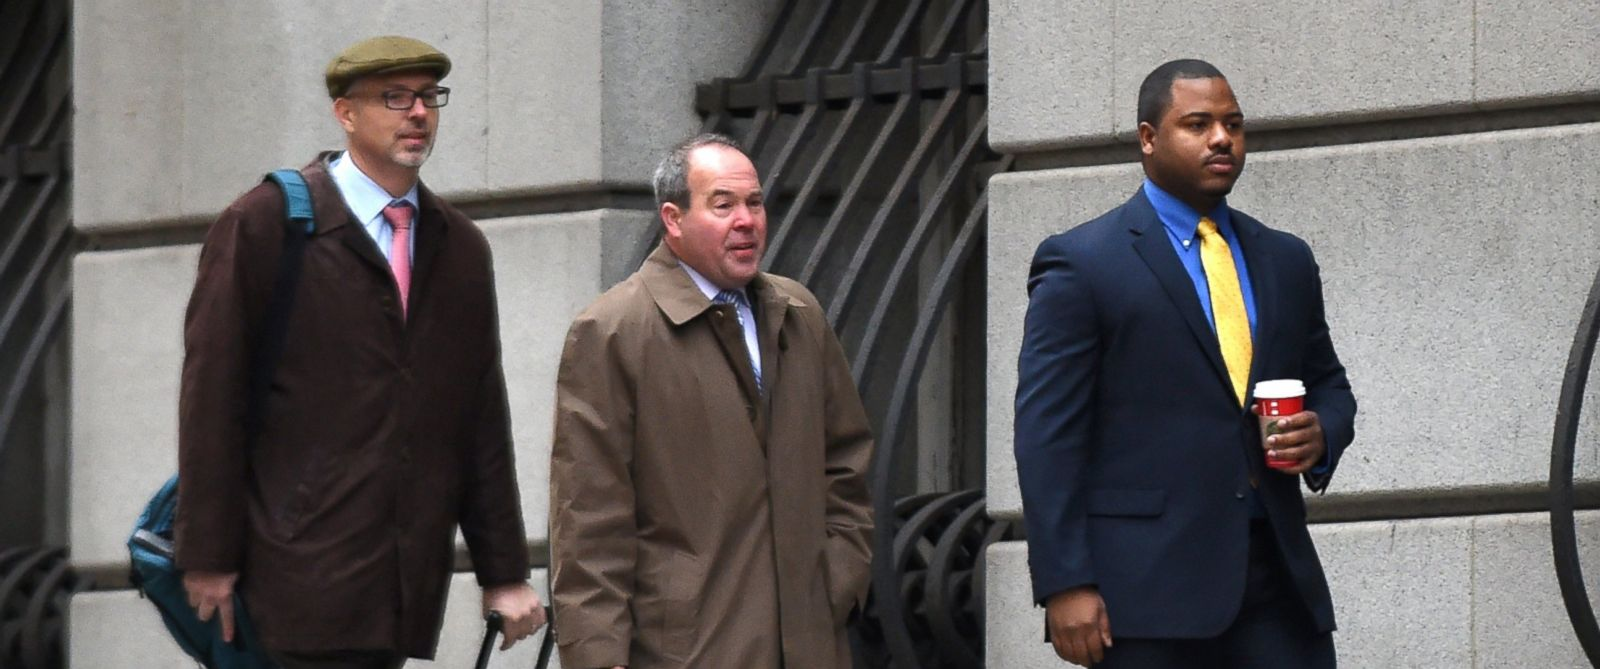 PHOTO: William Porter, far right, along with his lawyer Joseph Murtha, center, enter the Baltimore City courthouse to begin the trial in the the death of Freddie Gray on Nov. 30, 2015 in Baltimore.